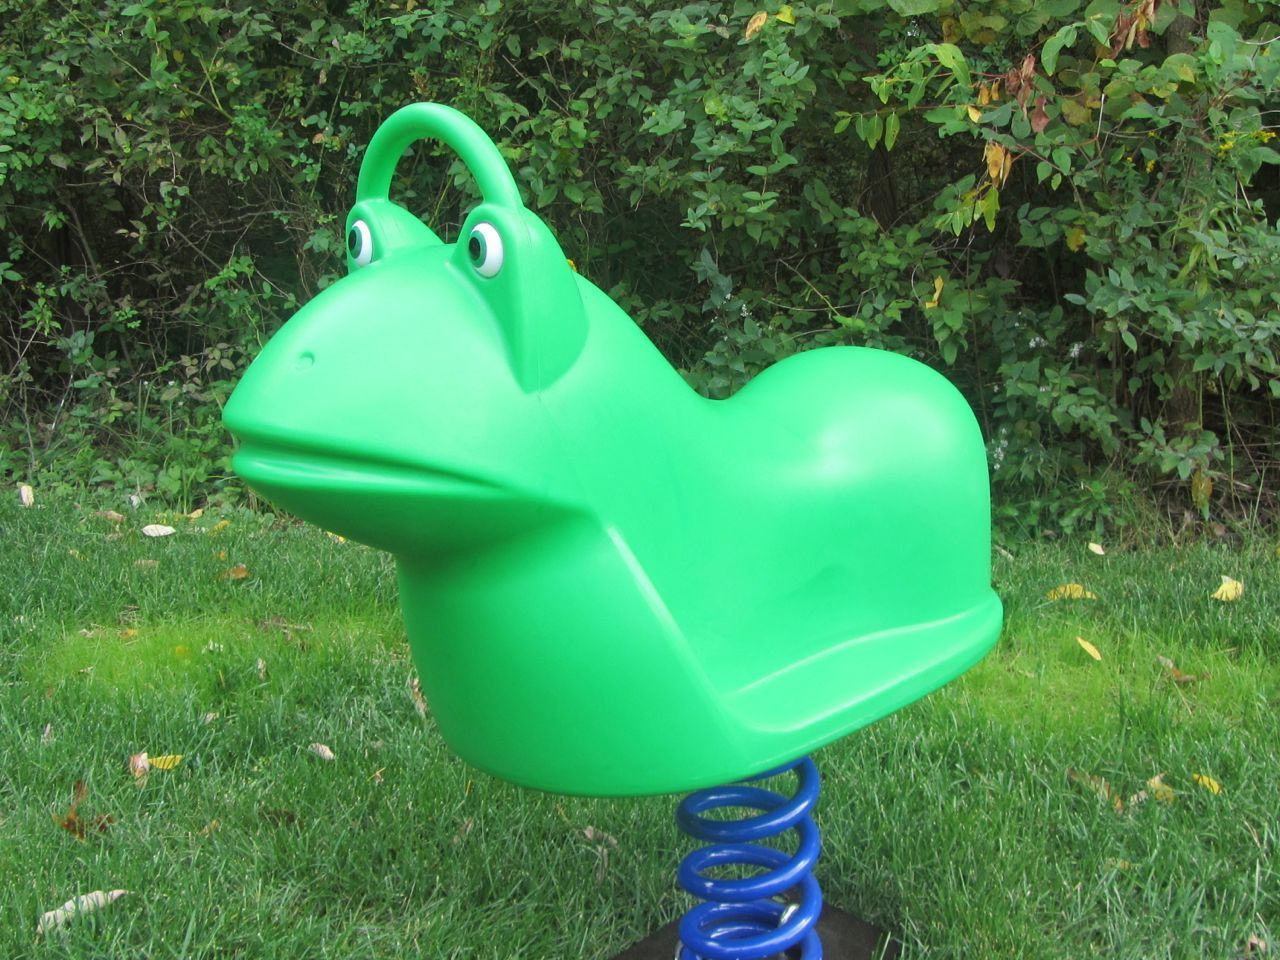 Frog Spring Rider Pro Playgrounds The Play